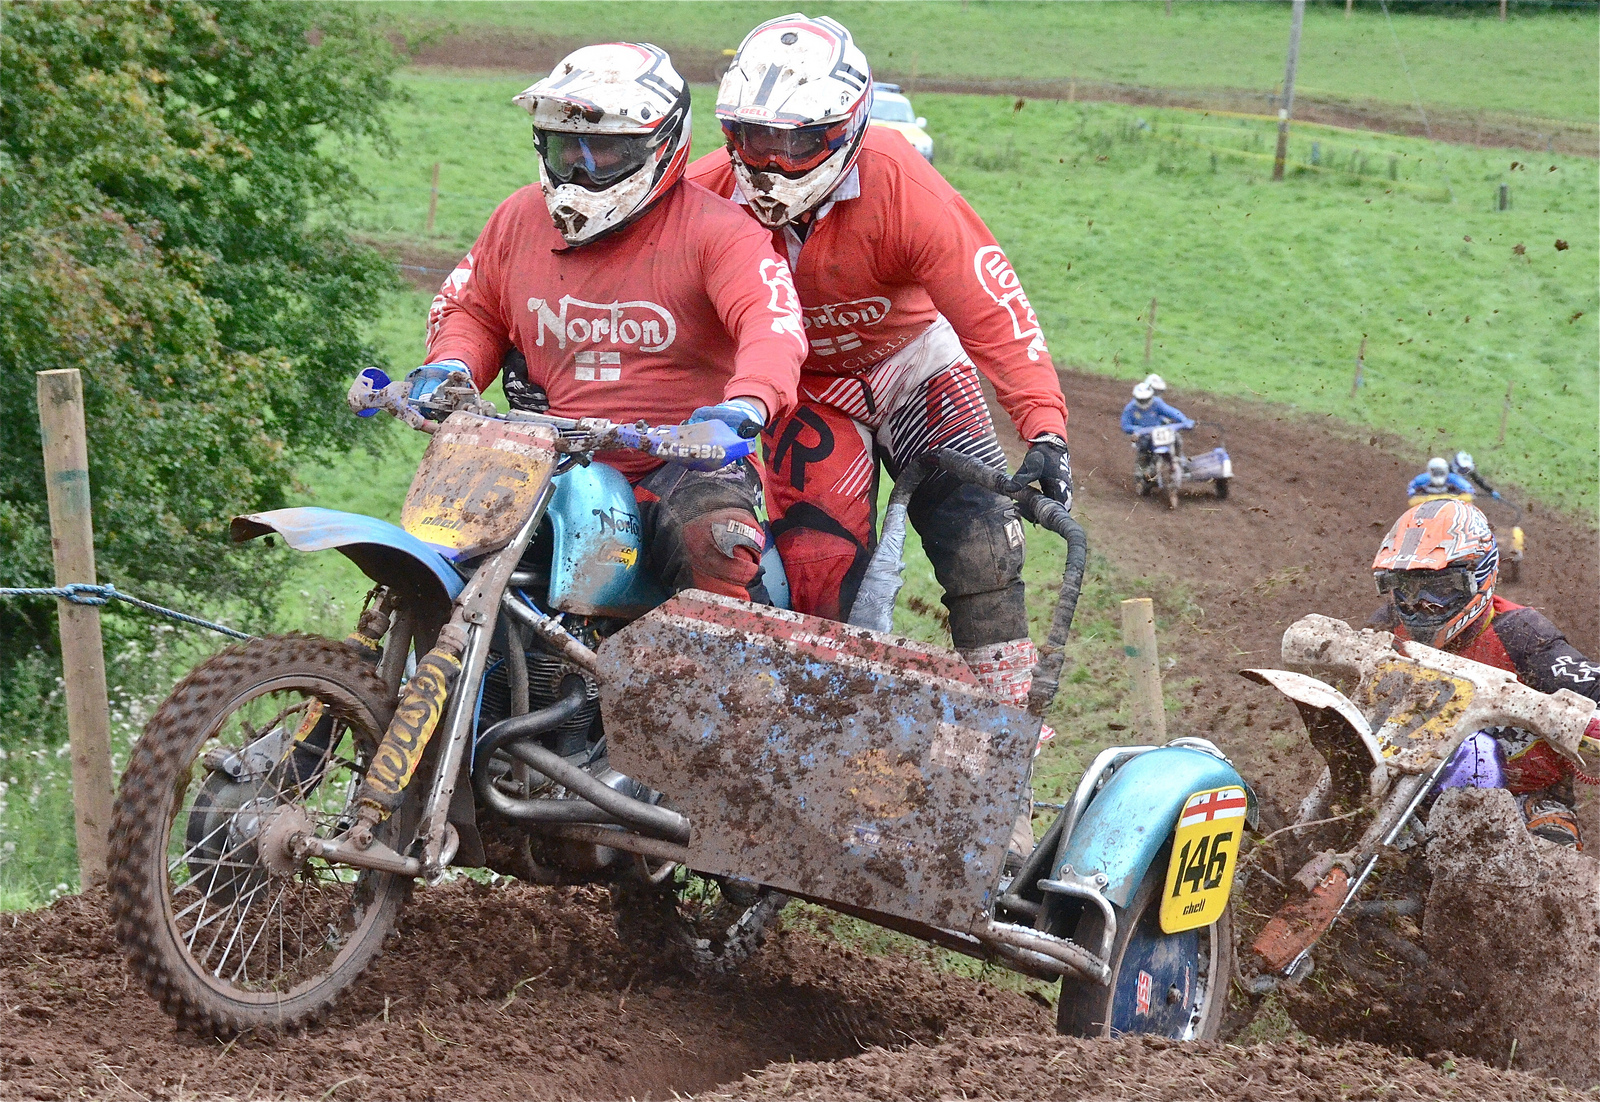 Llanthony Classic Scramble Photos September 2015 classicdirtbikerider.com..51